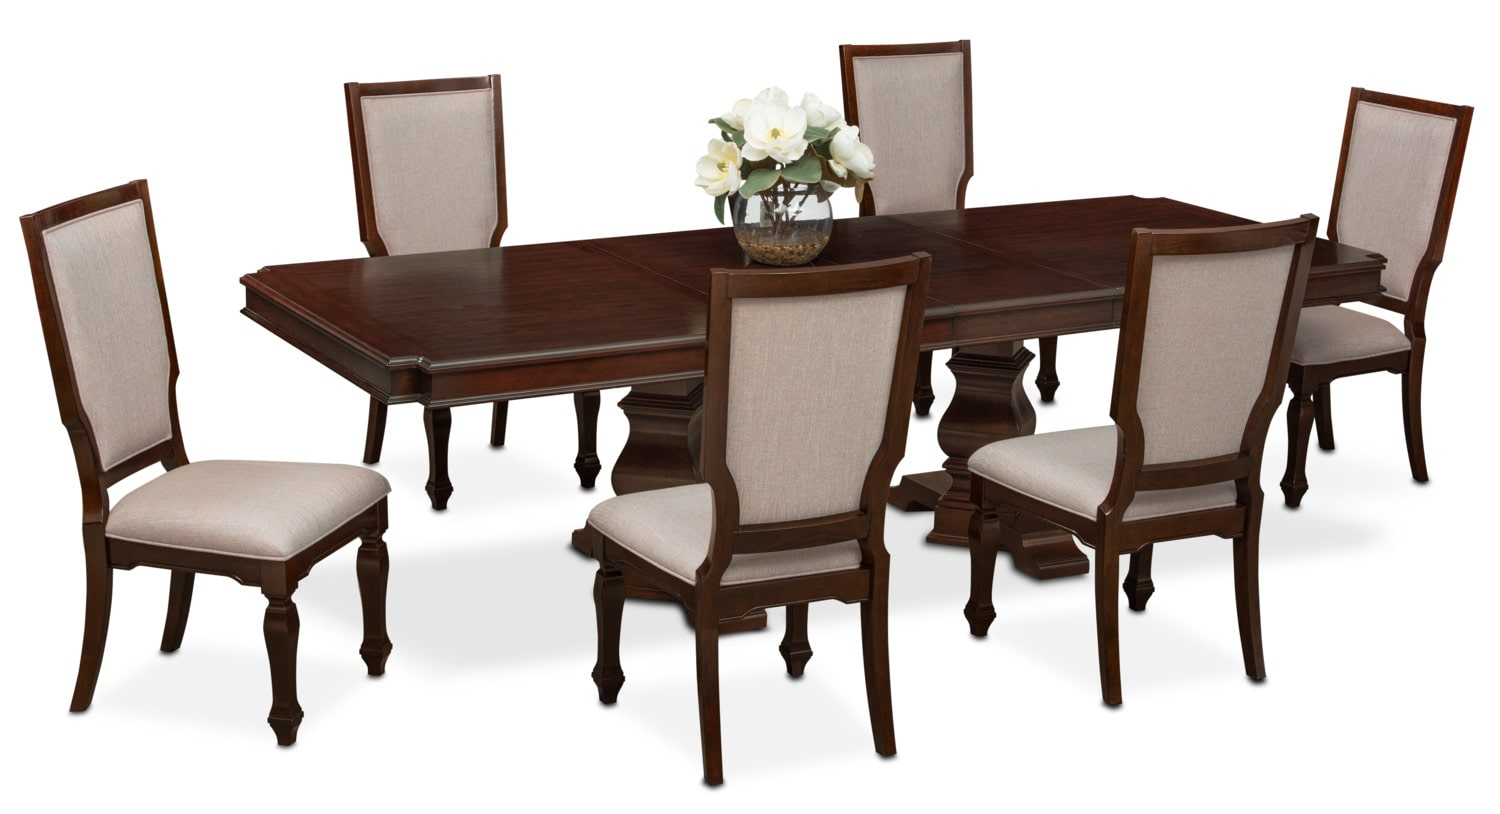 Dining Room Furniture   Vienna Dining Table And 6 Upholstered Side Chairs    Merlot